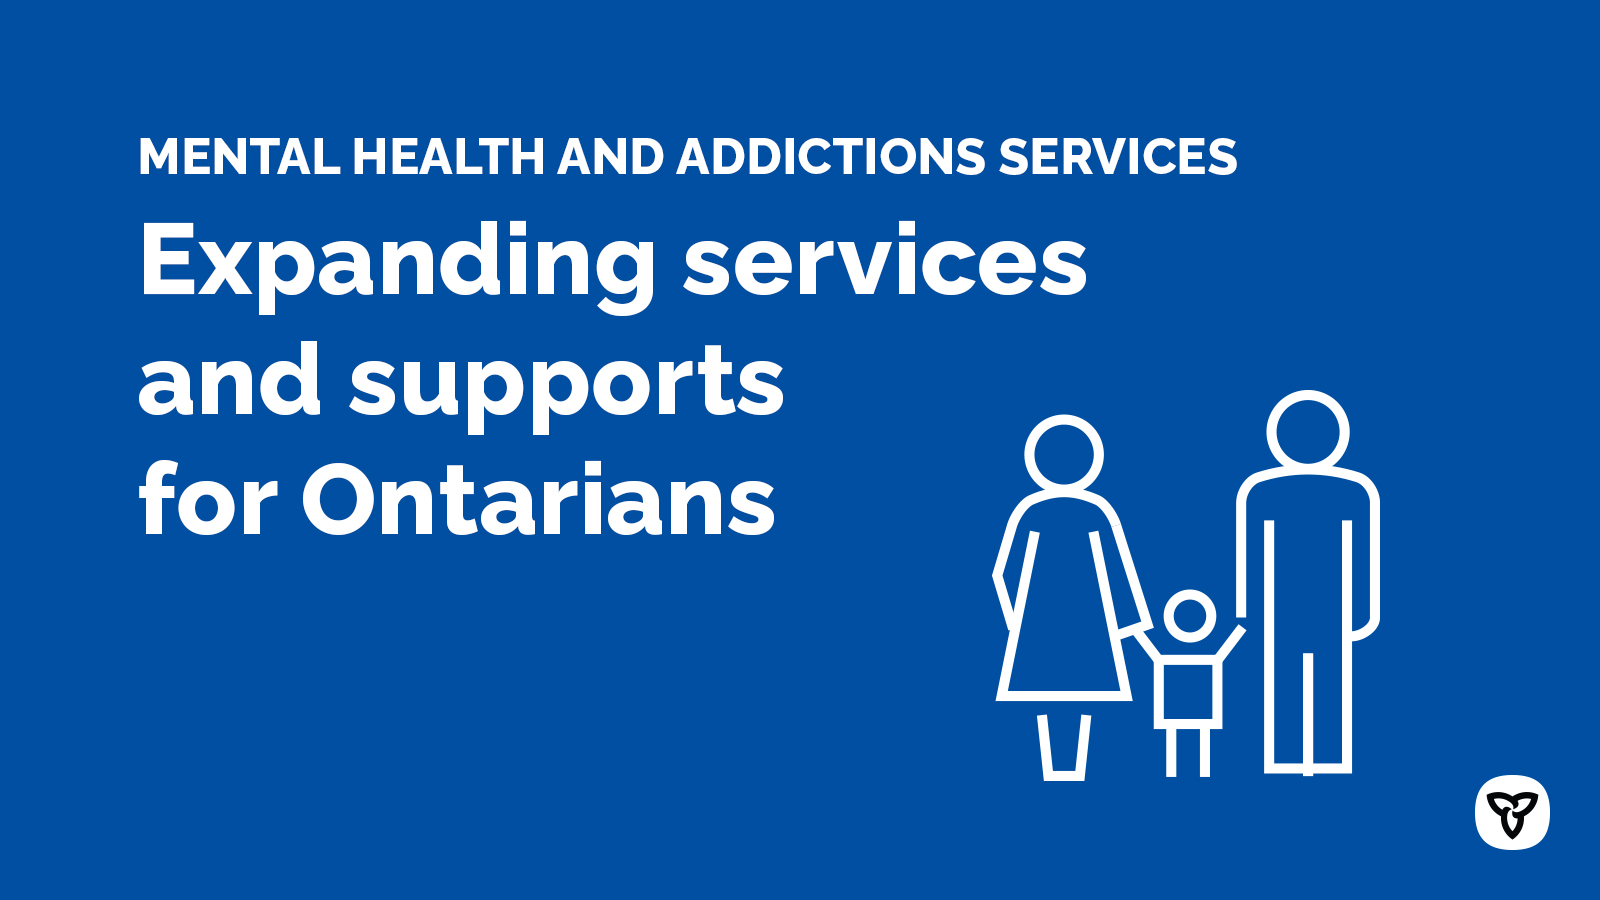 Ontario Building a Modern, Connected and Comprehensive Mental Health and Addictions System